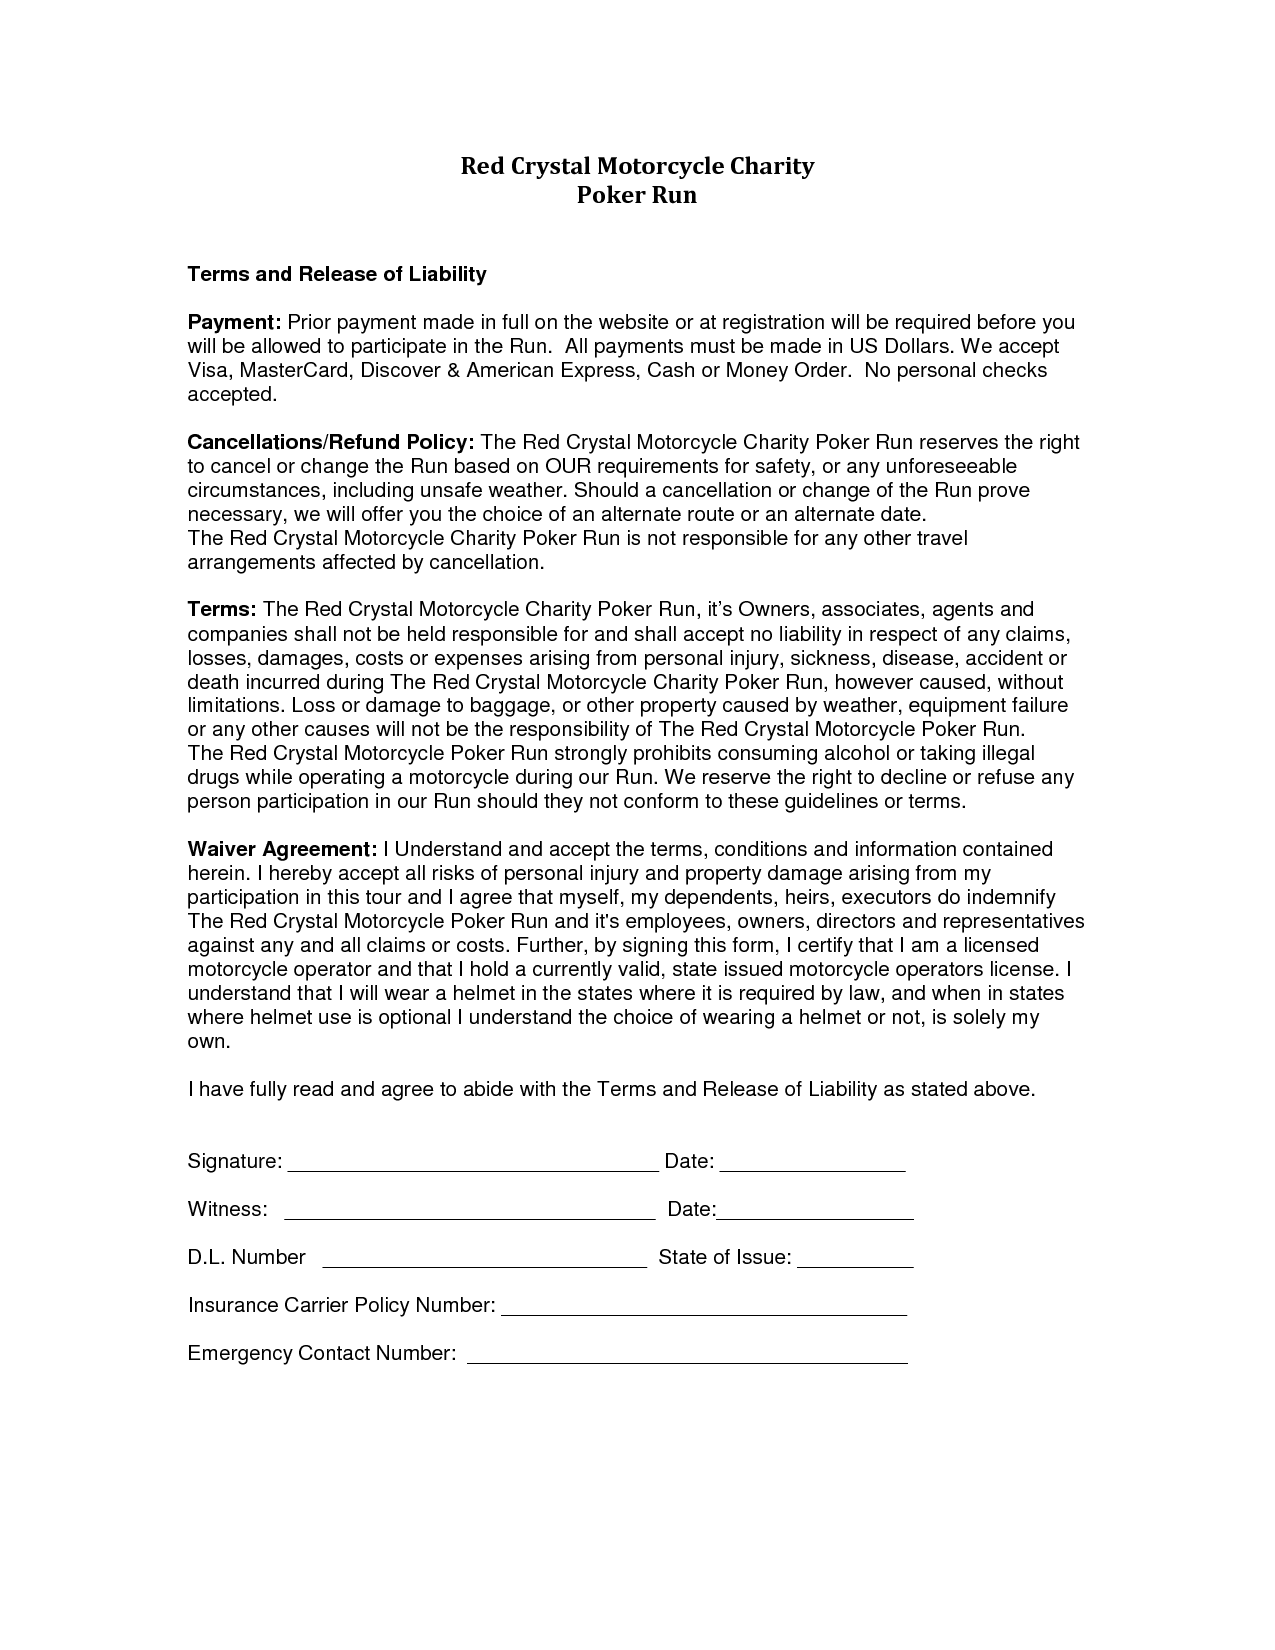 release from liability form template liability release form template free printable documents